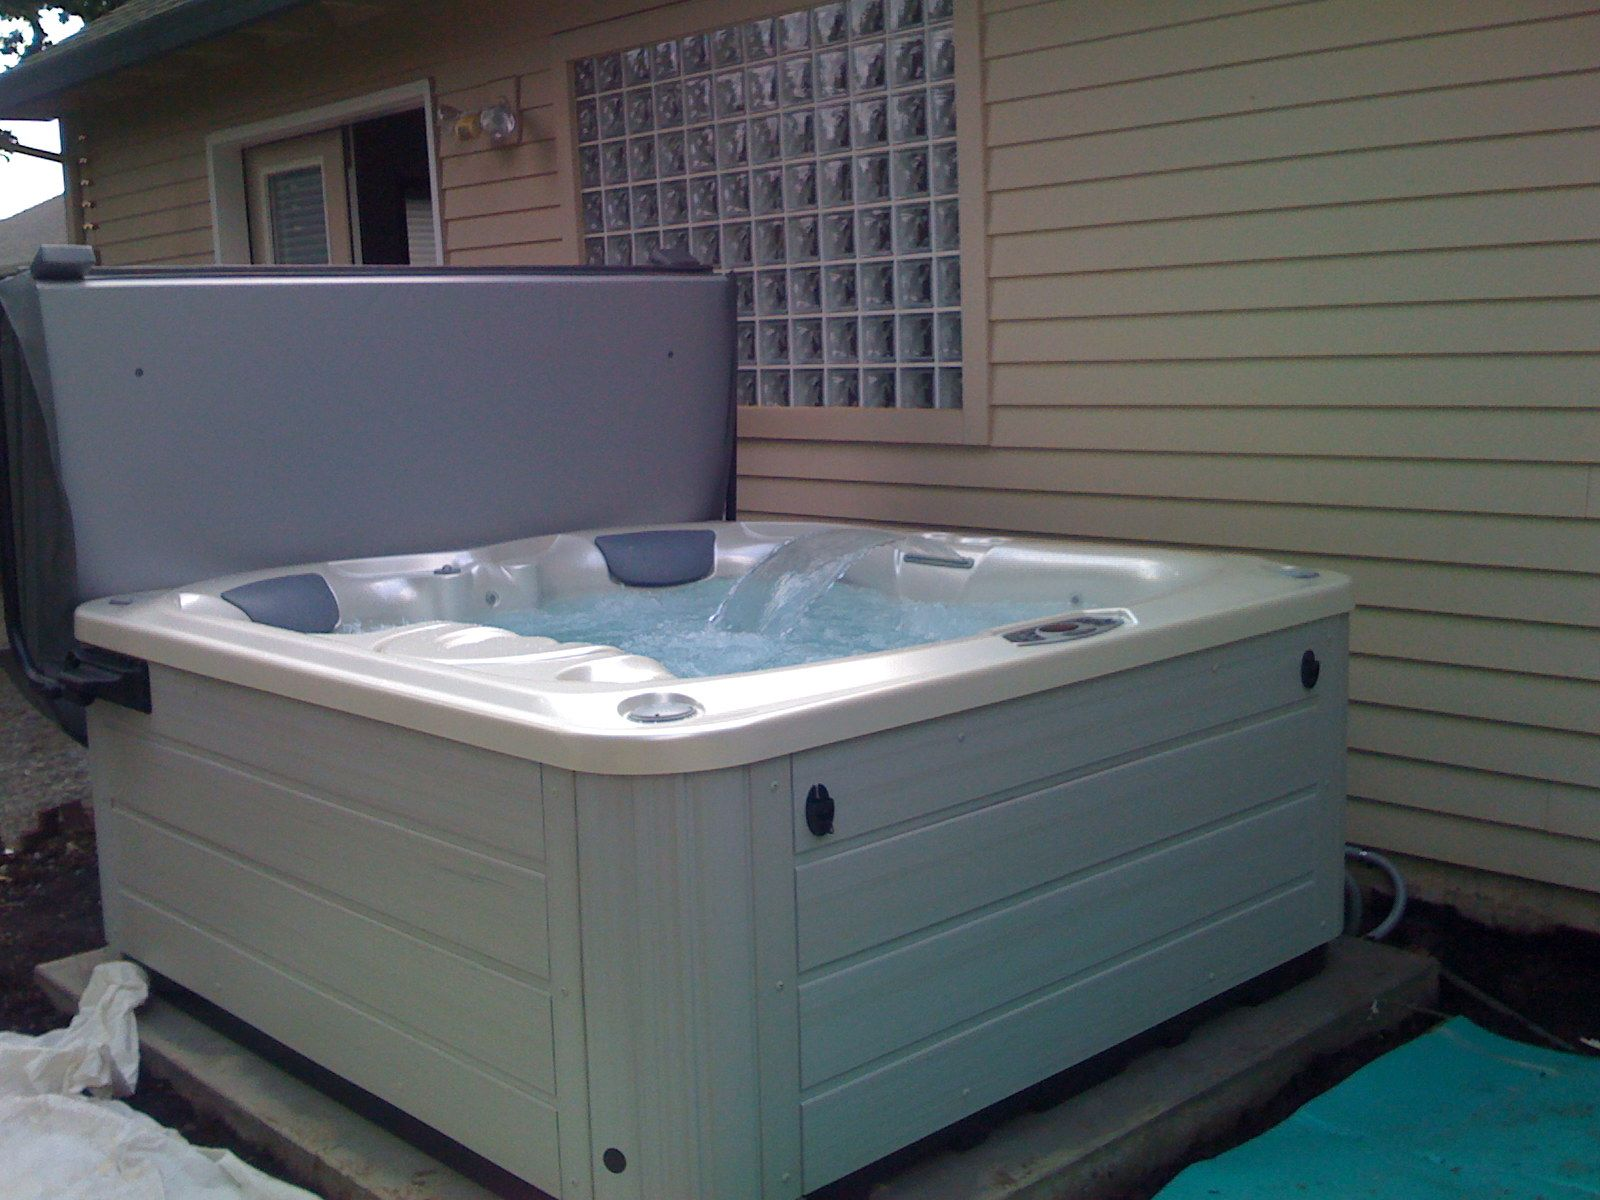 Simple hot tub install - fits perfectly on your deck.   My Home((: I ...